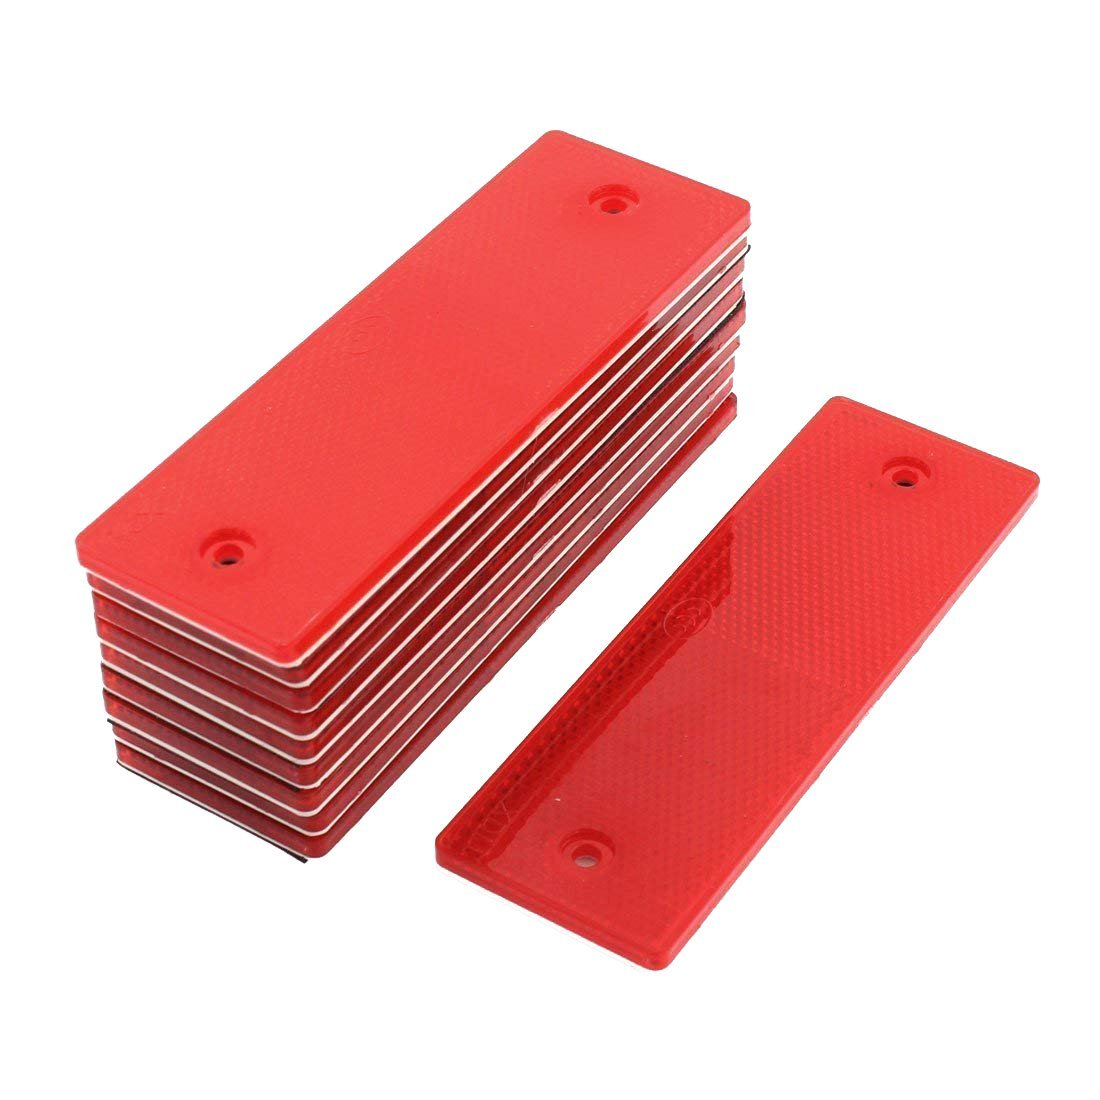 Sydien Red Rectangular Stick-On/Screw-Mount Reflector with Chrome Plastic Trim for Trucks,Trailers, RVs and Buses 10 Pack